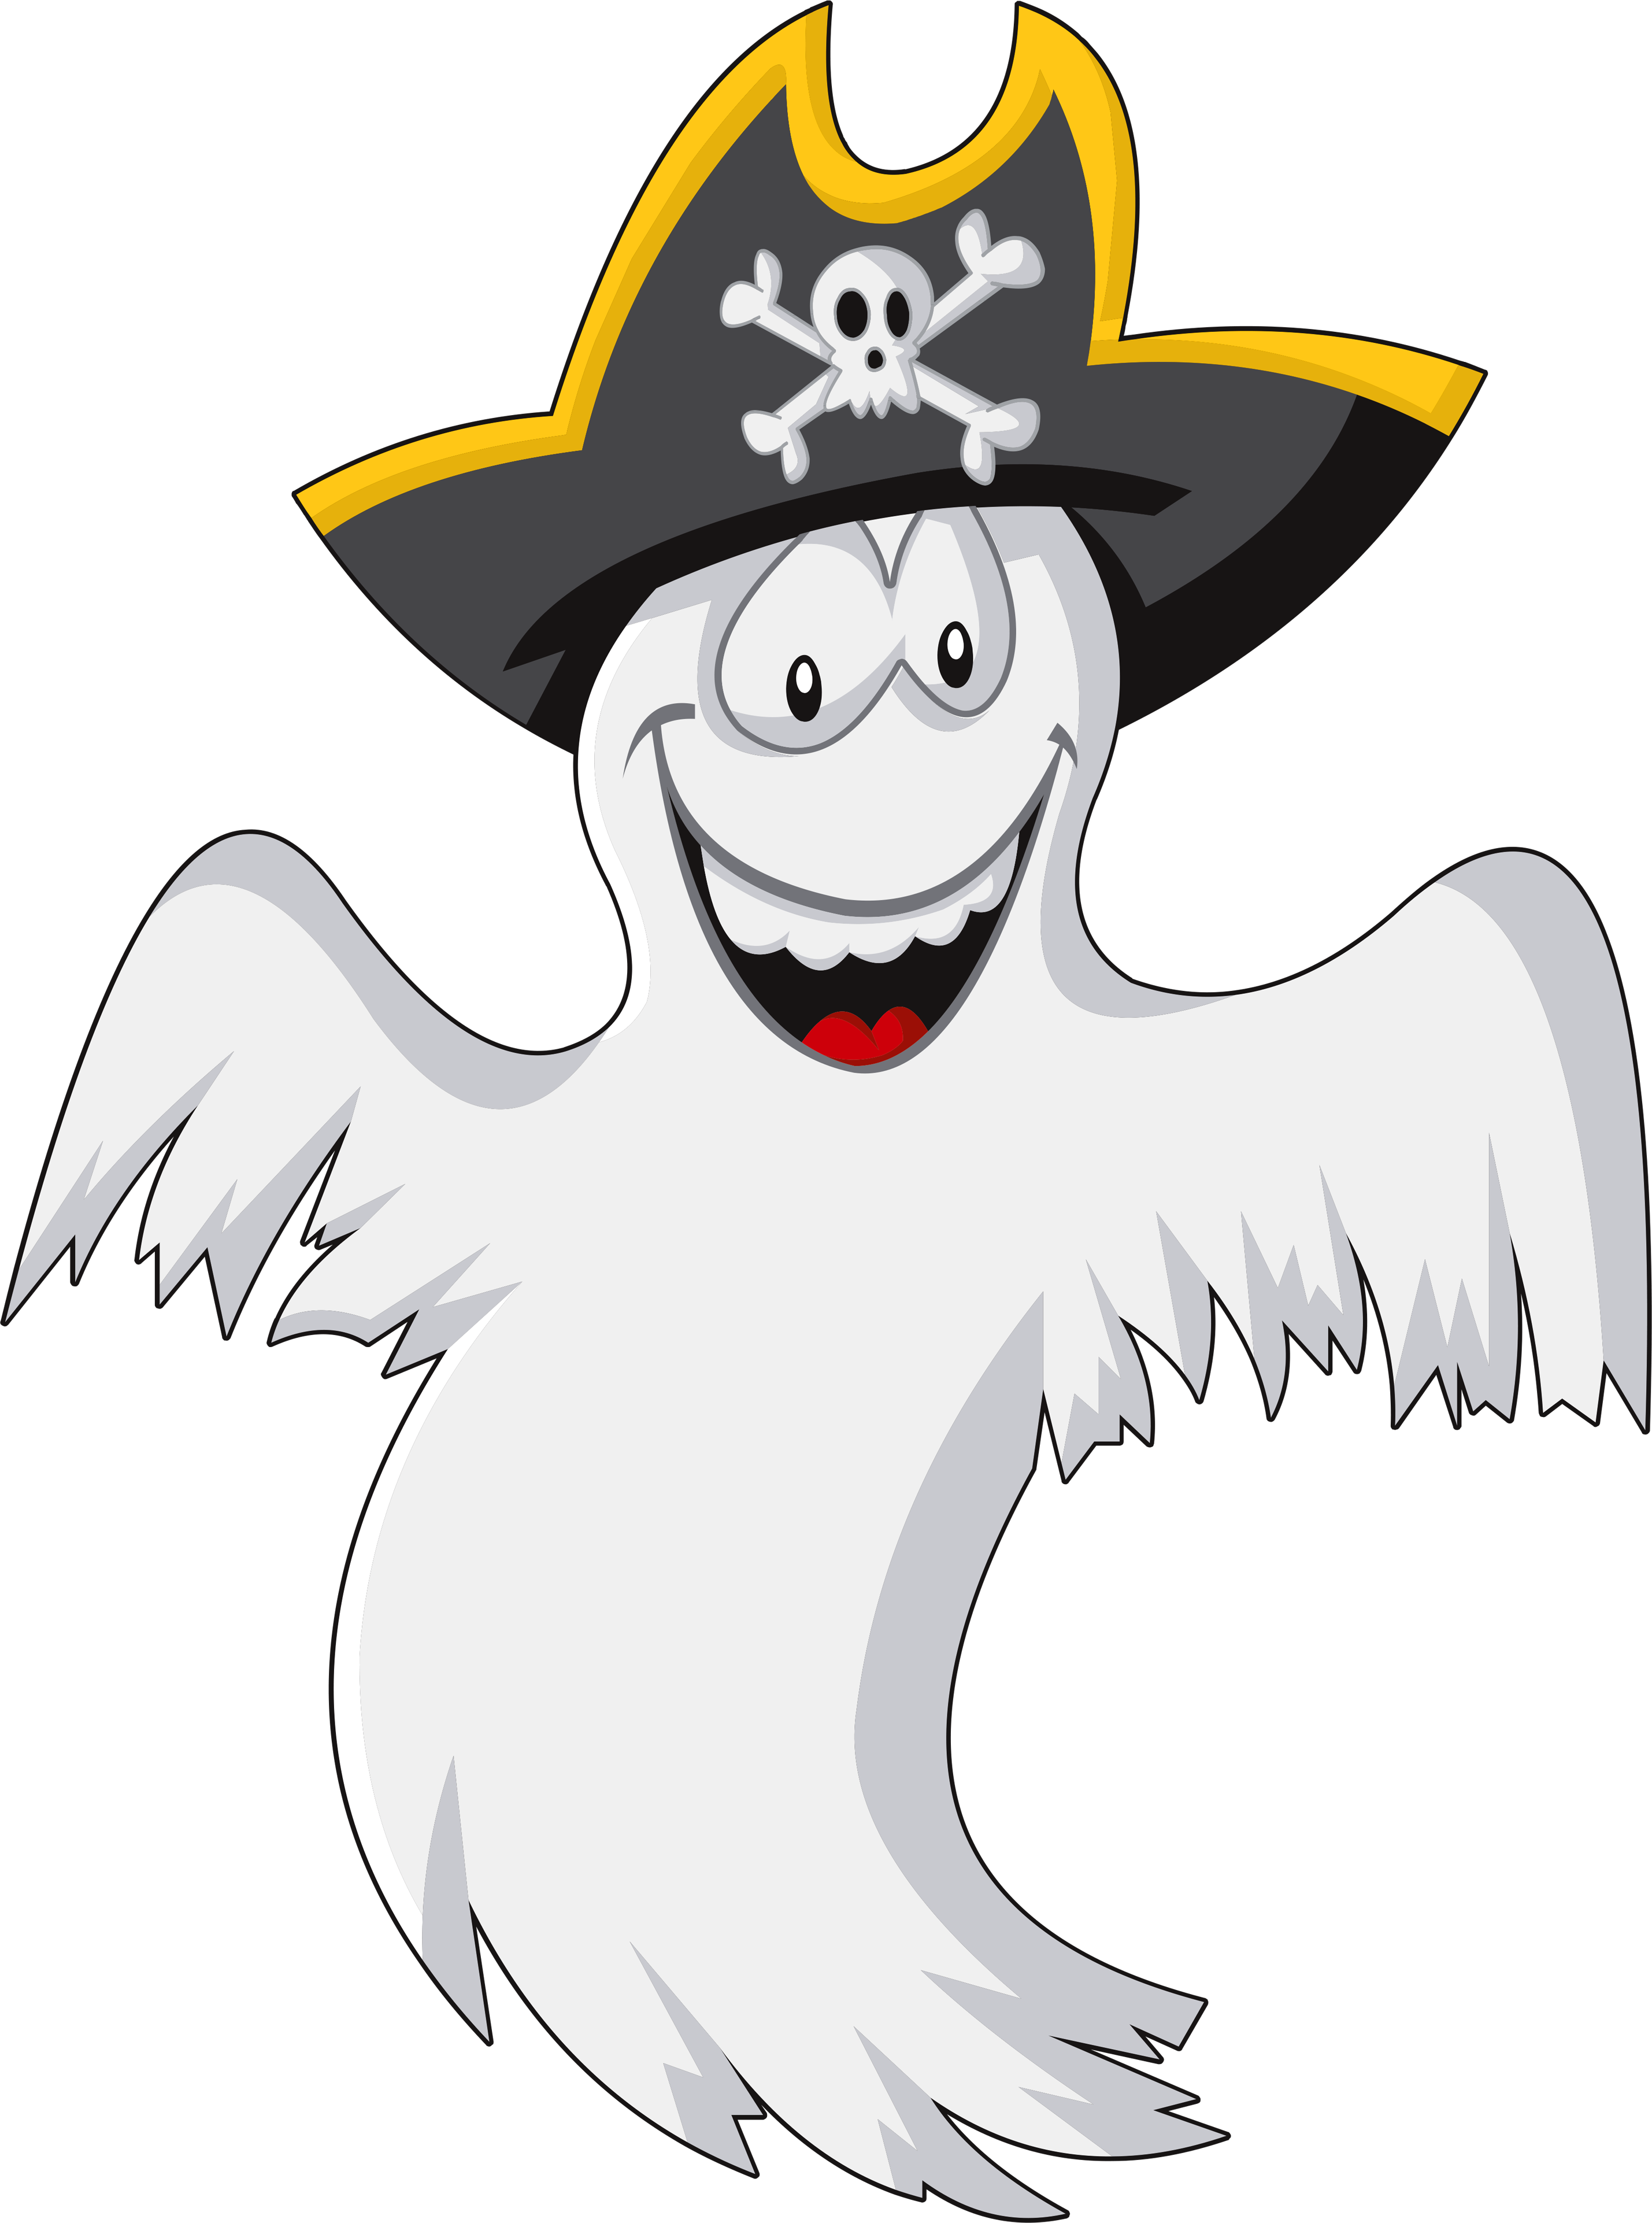 Ghost clipart costume. Png images free download